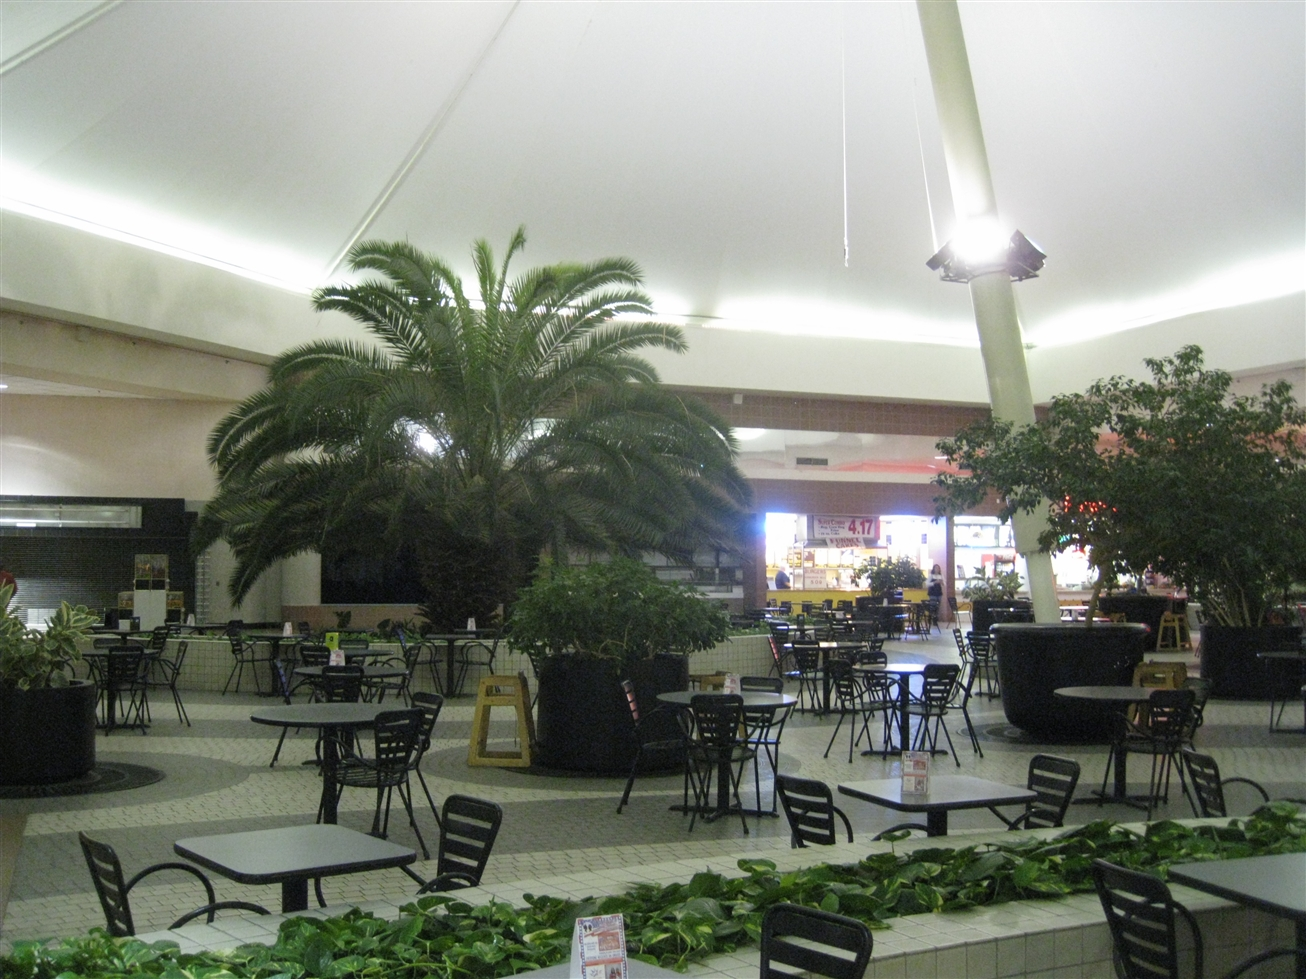 Midway Mall food court in Sherman, TX